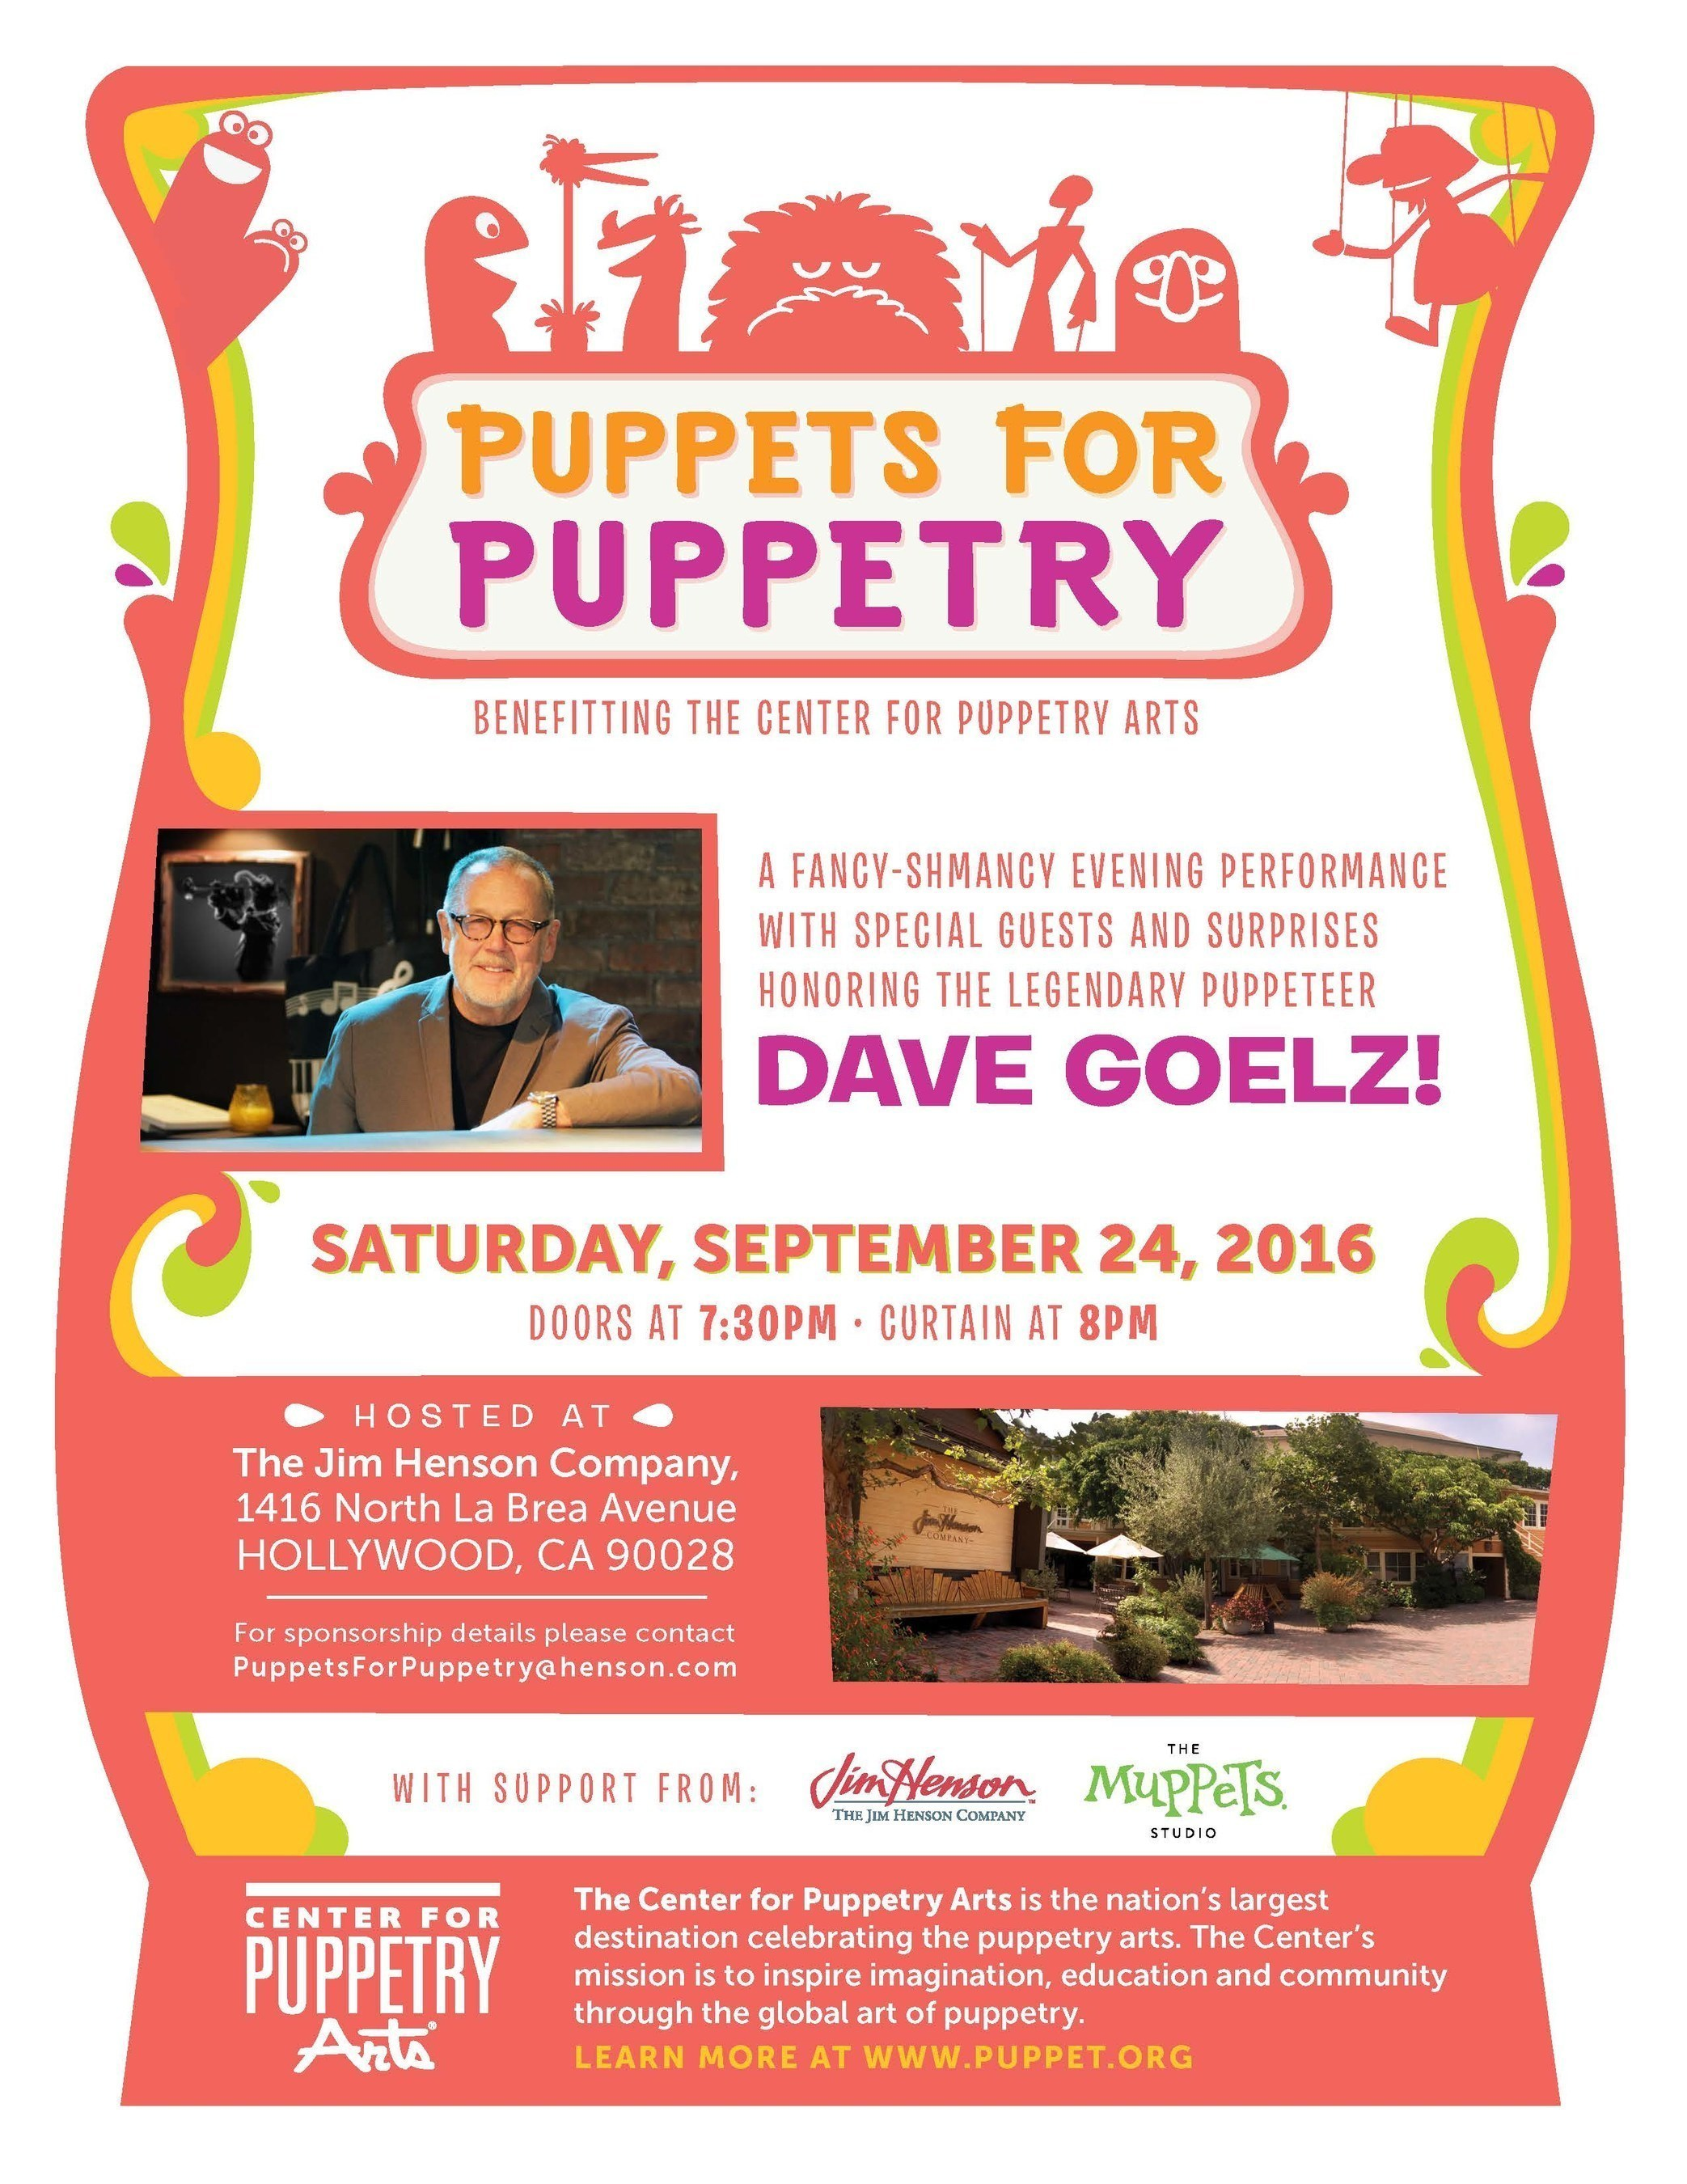 The Jim Henson Company Hosts, 'Puppets For Puppetry' Fundraiser to Honor The Esteemed Puppeteer Dave Goelz on September 24, 2016